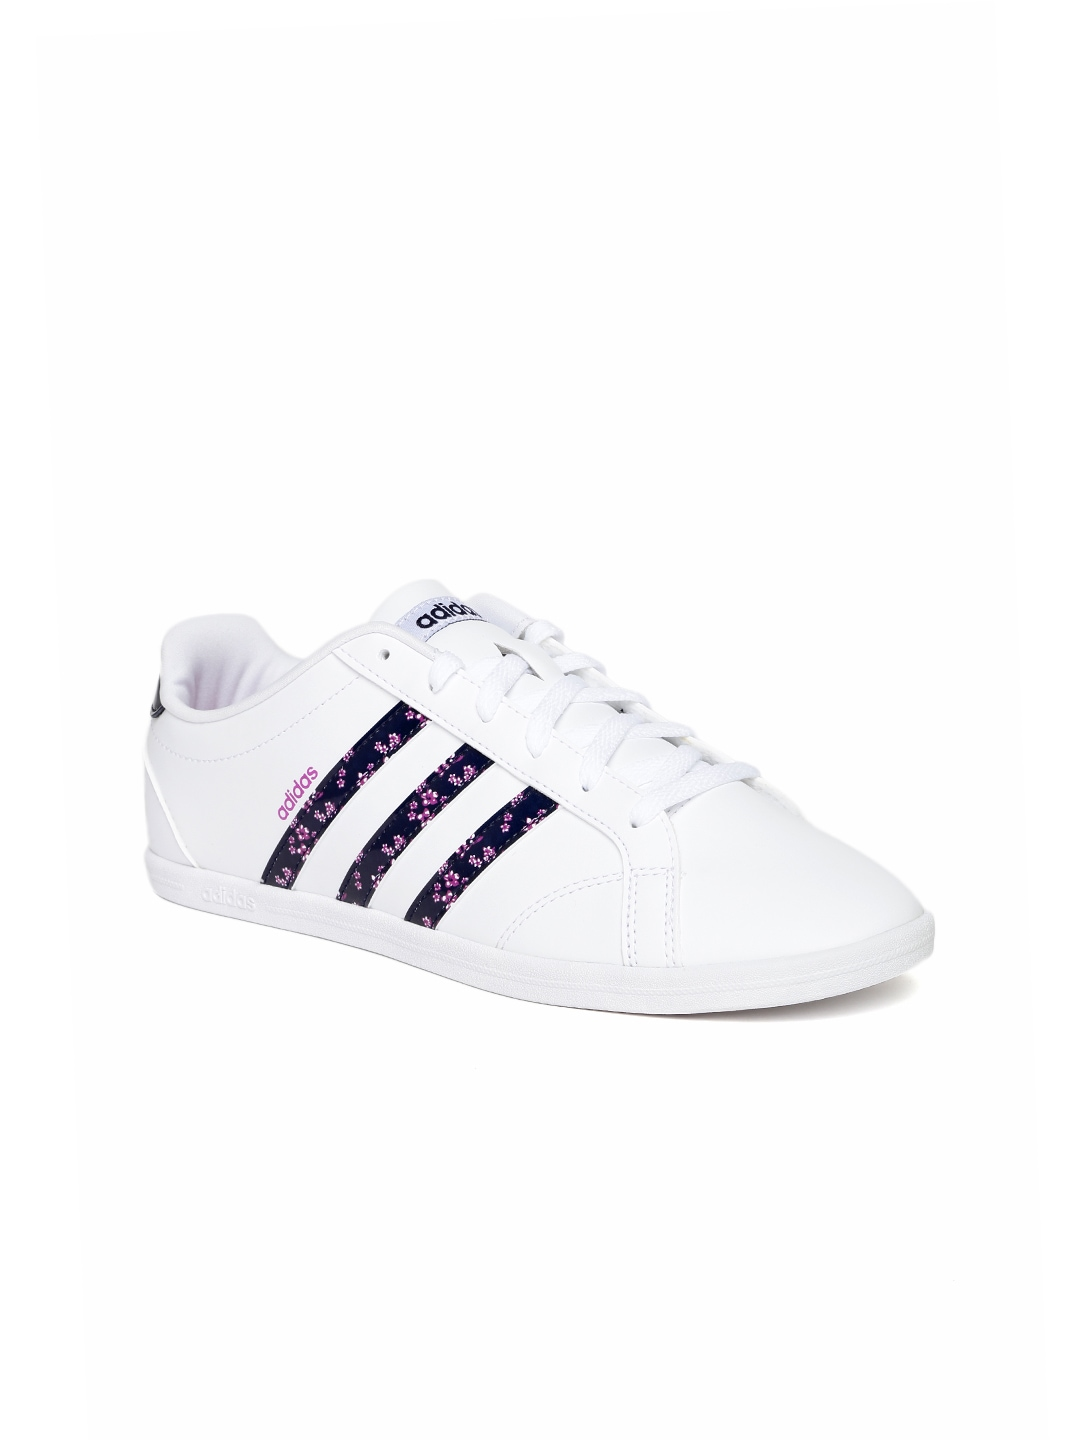 finest selection c77a7 cf058 ... usa adidas neo ventilation white blue 324fe 9492d